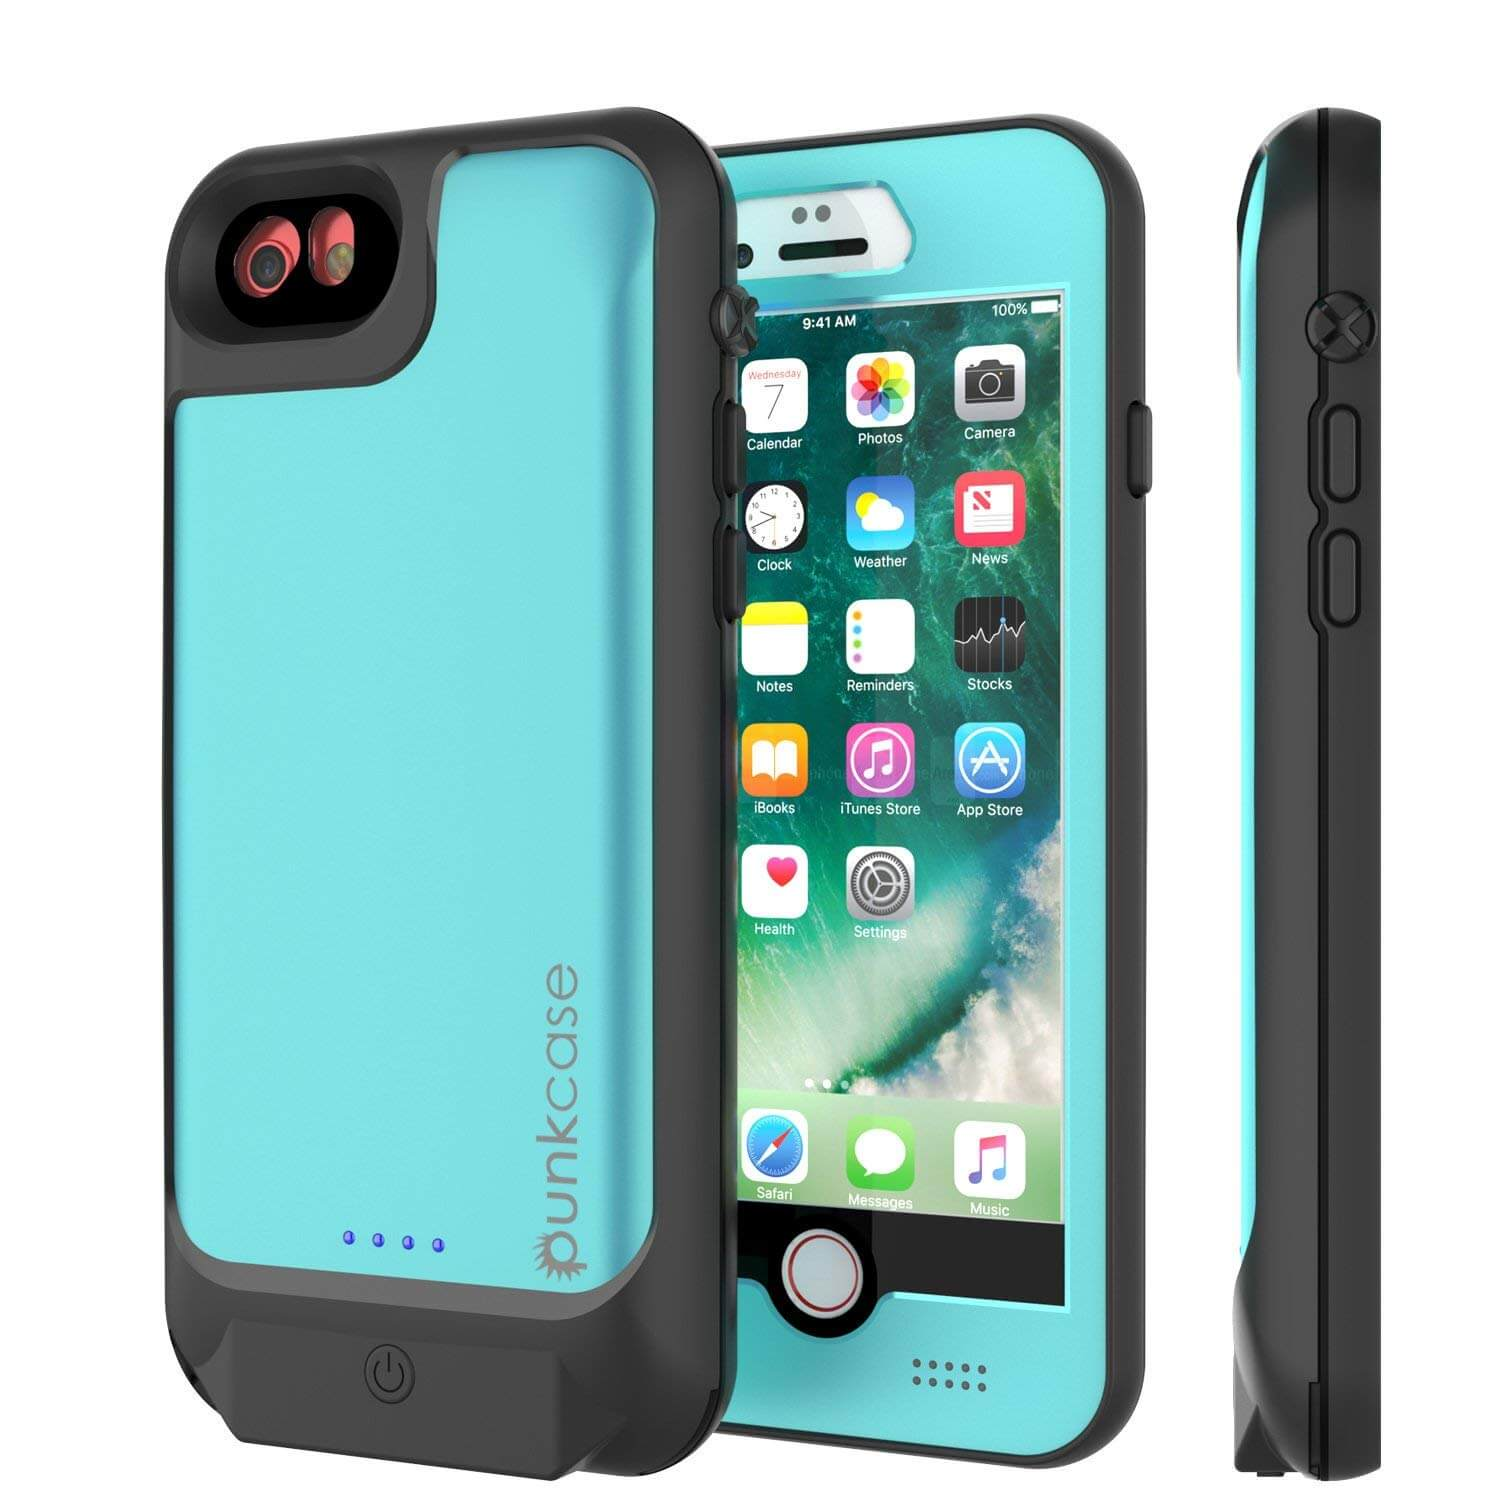 PunkJuice iPhone 7 Battery Case Teal - Waterproof Slim Power Juice Bank with 2750mAh